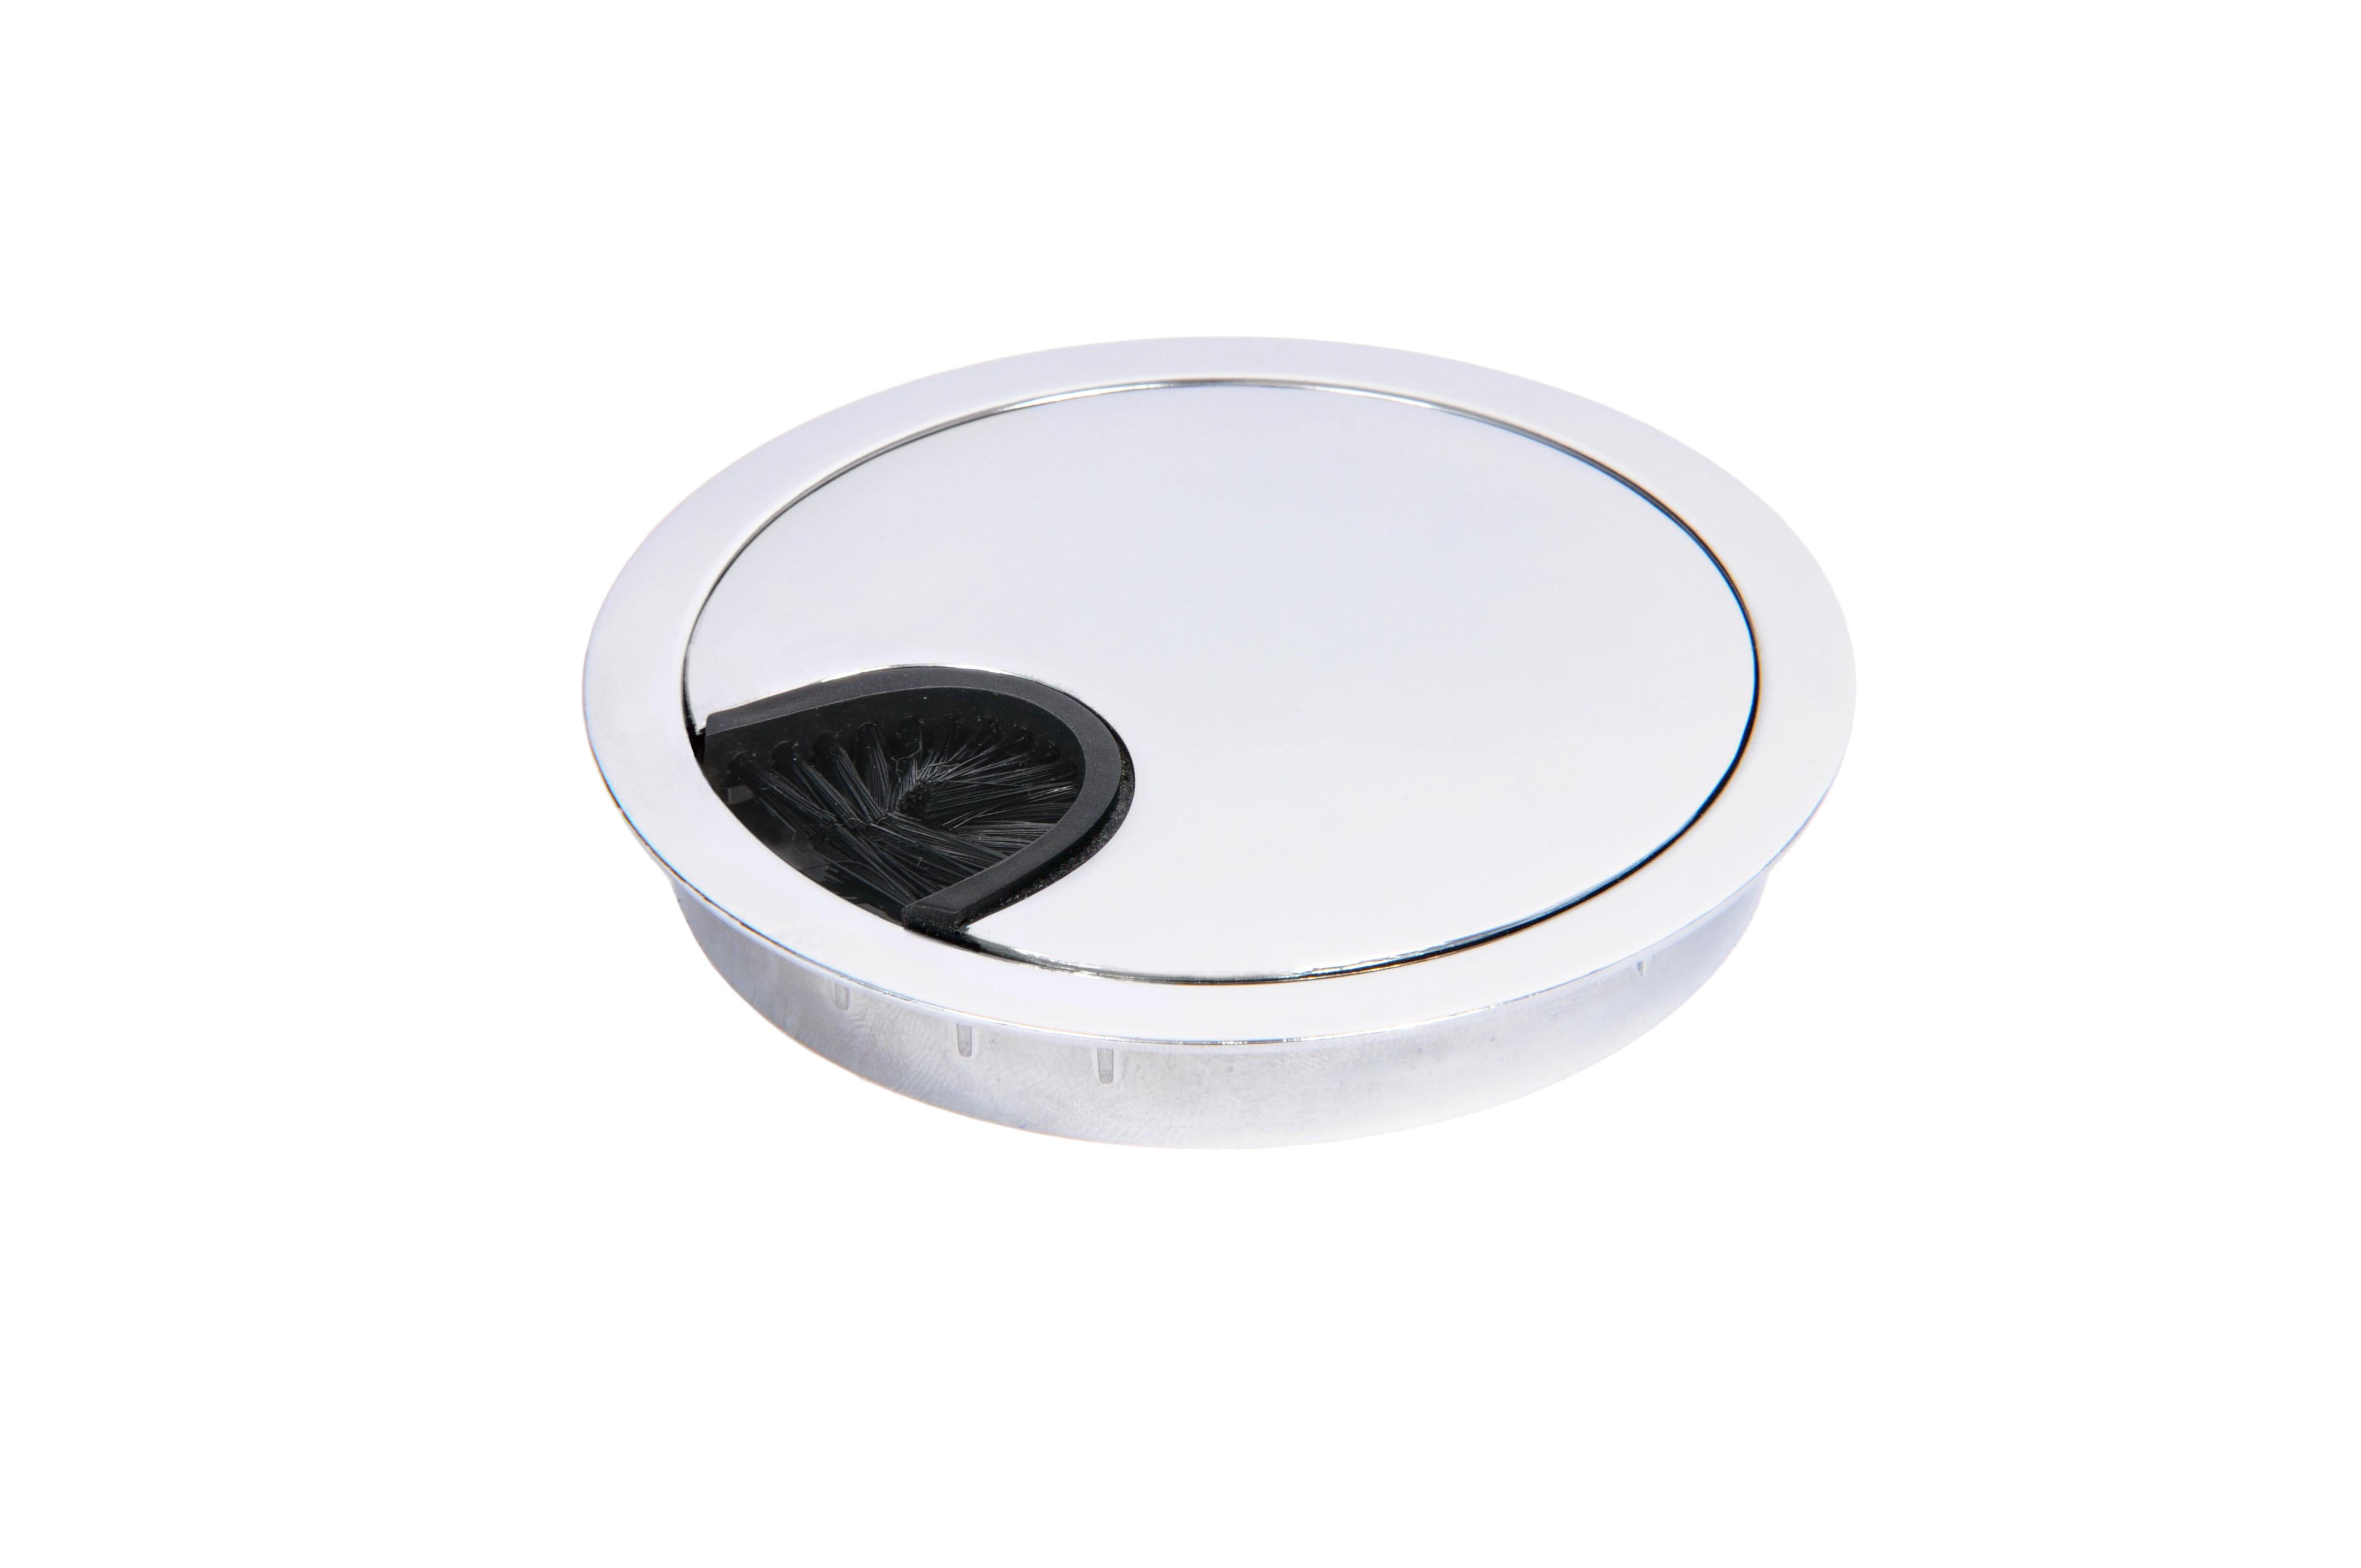 inch station grommet desk wireless products charger charging model chiflow